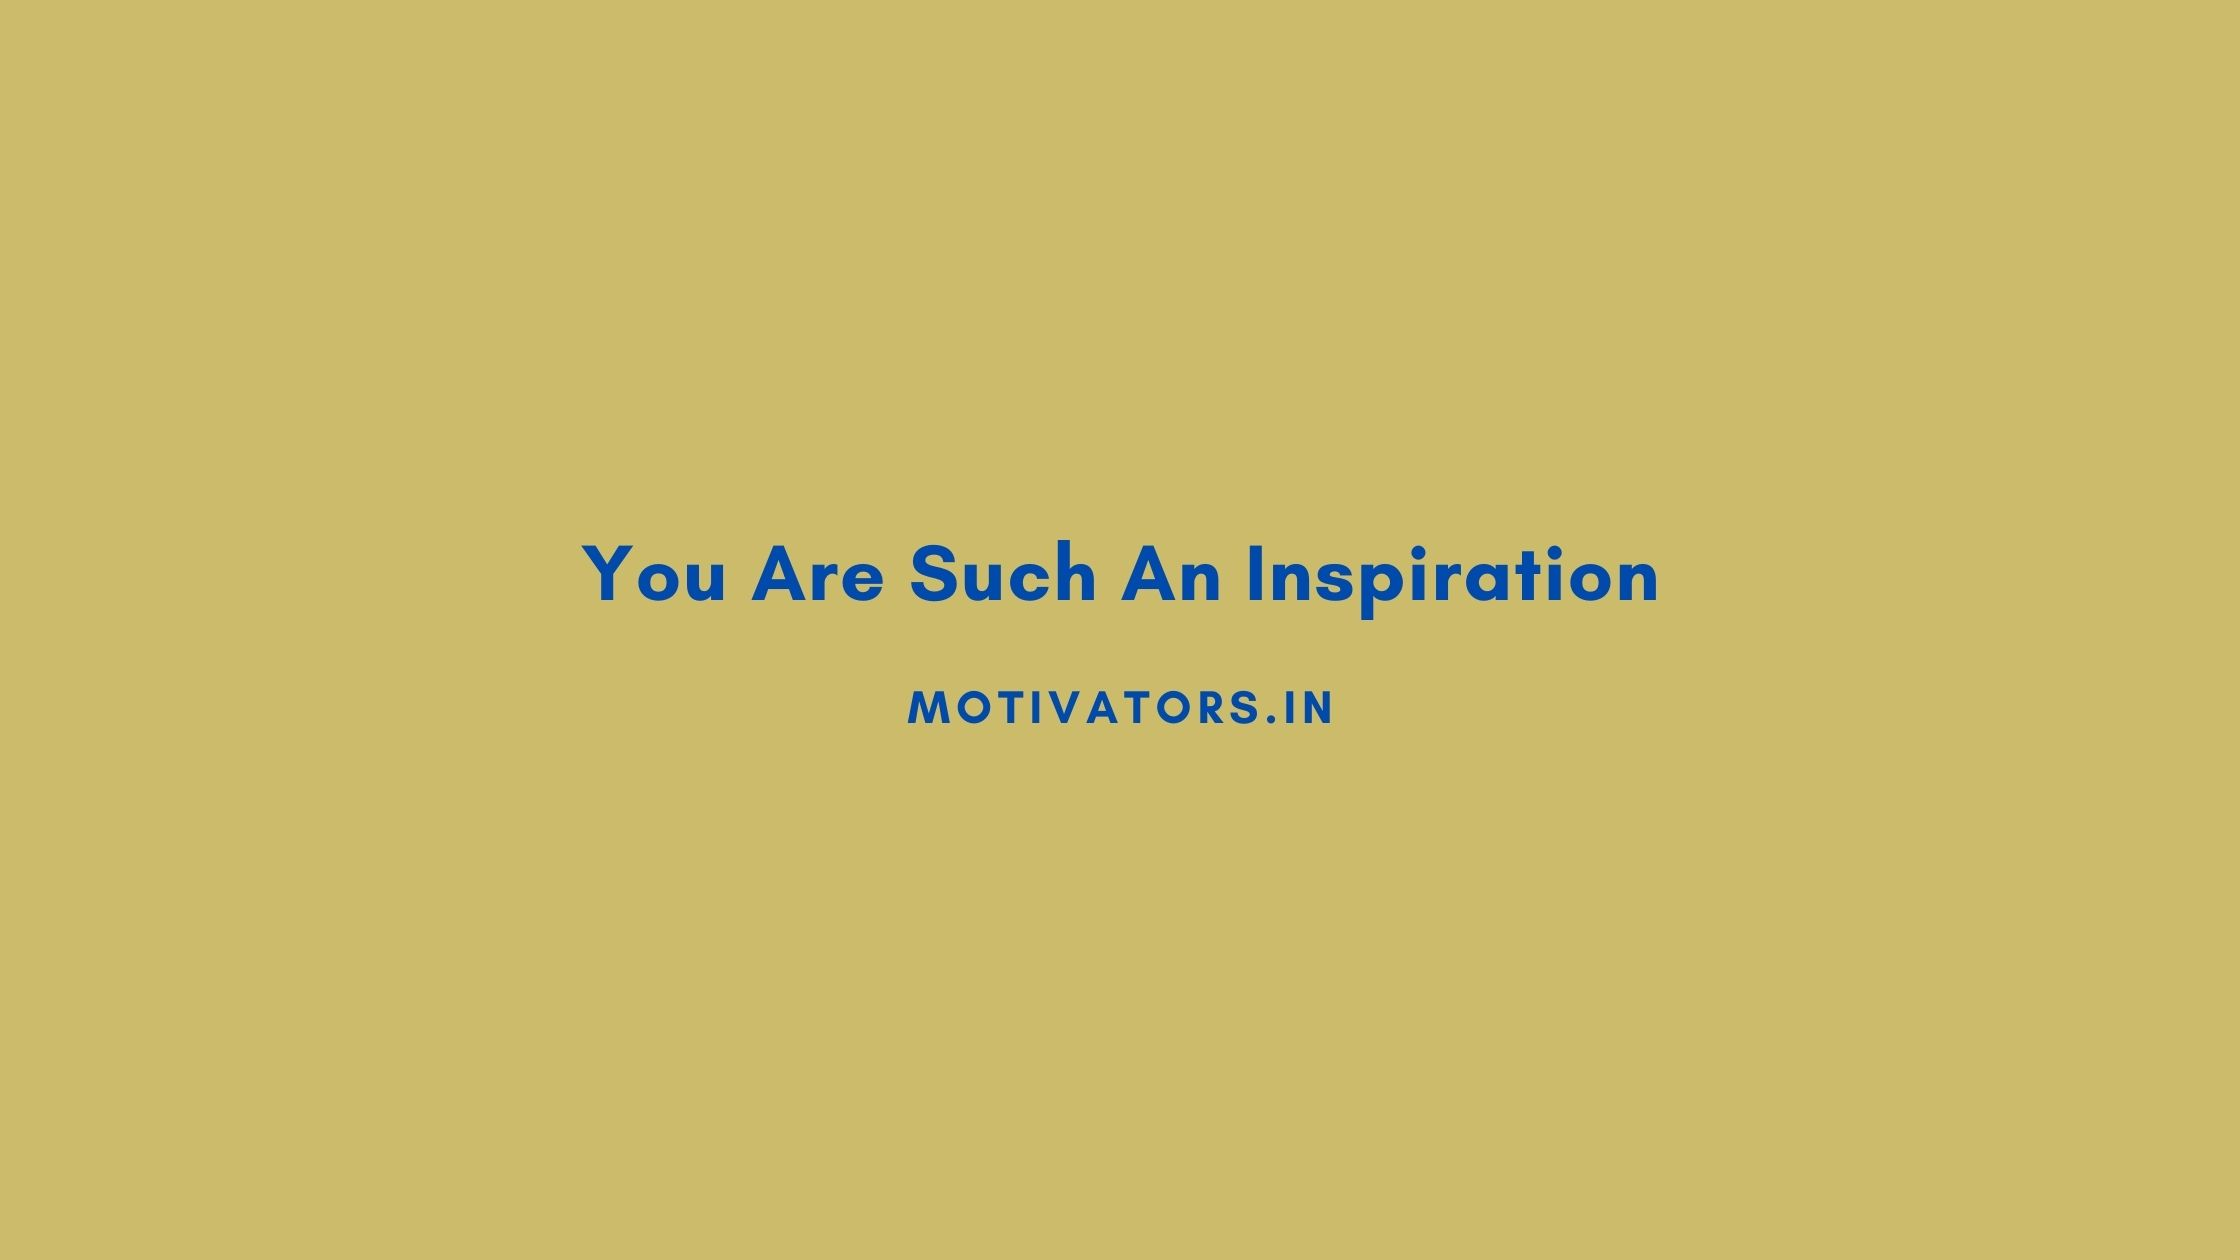 You Are Such An Inspiration